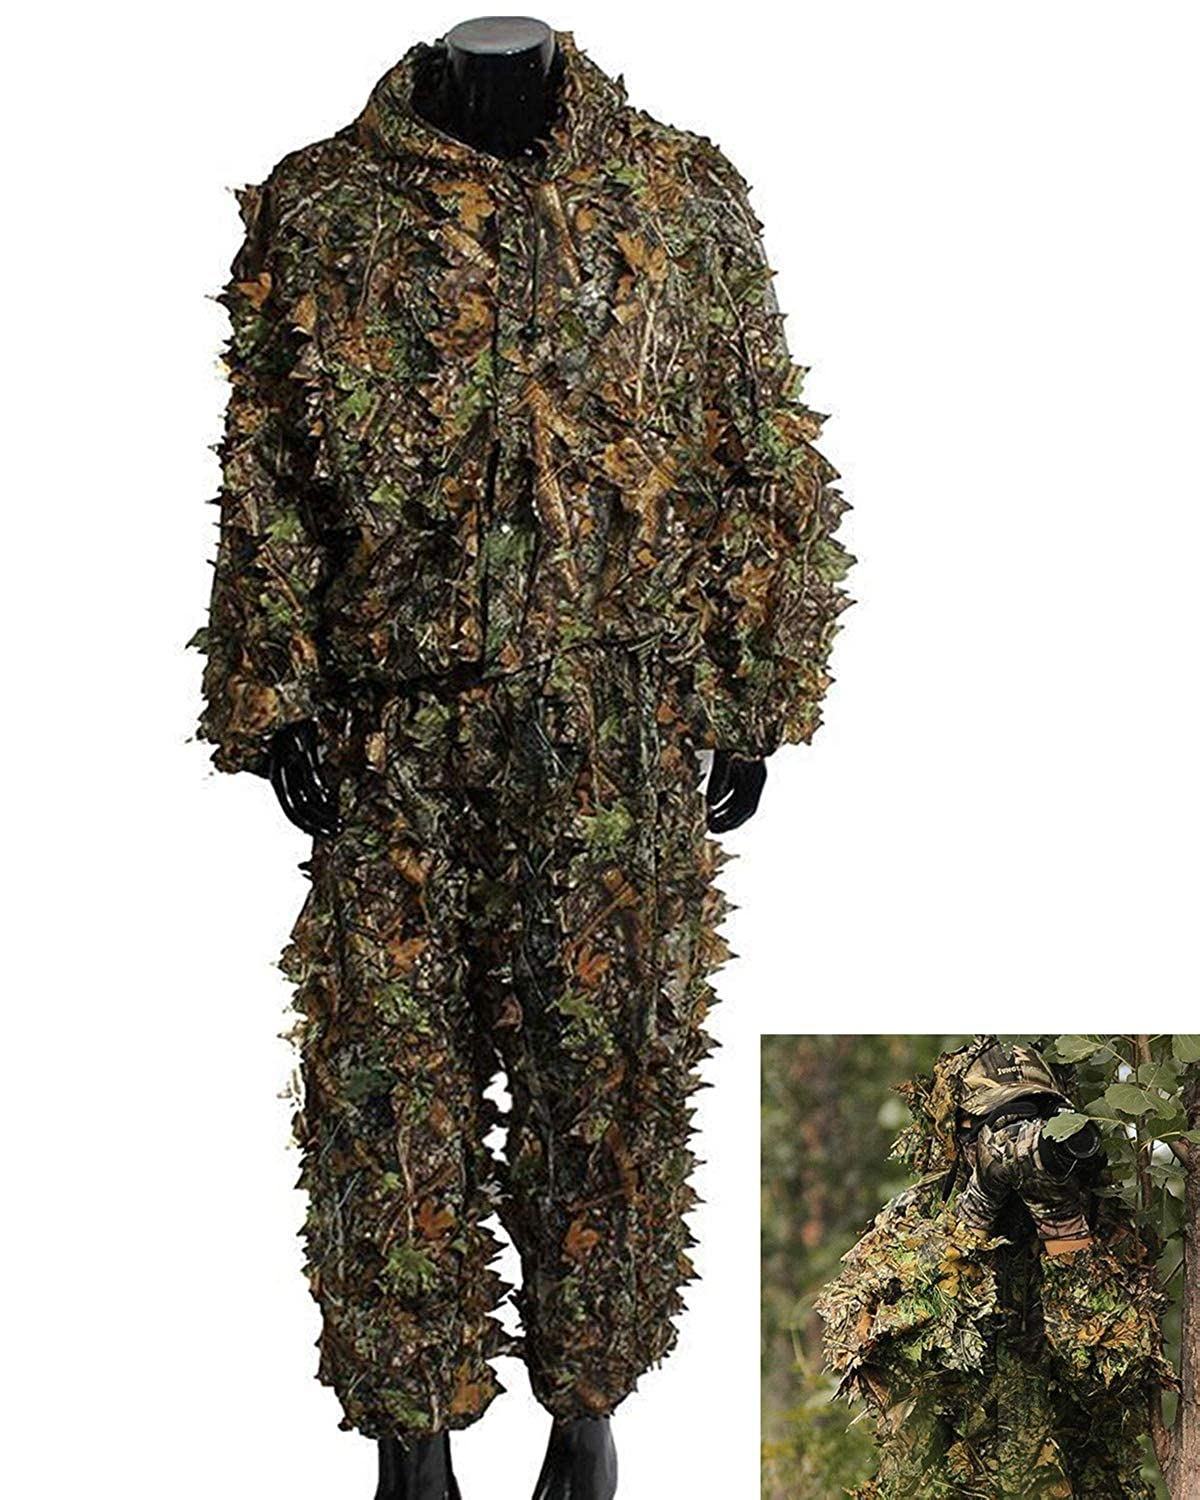 39772a4d6d5 The Ghillie Suit is quite breathable and comfortable.Feels very soft